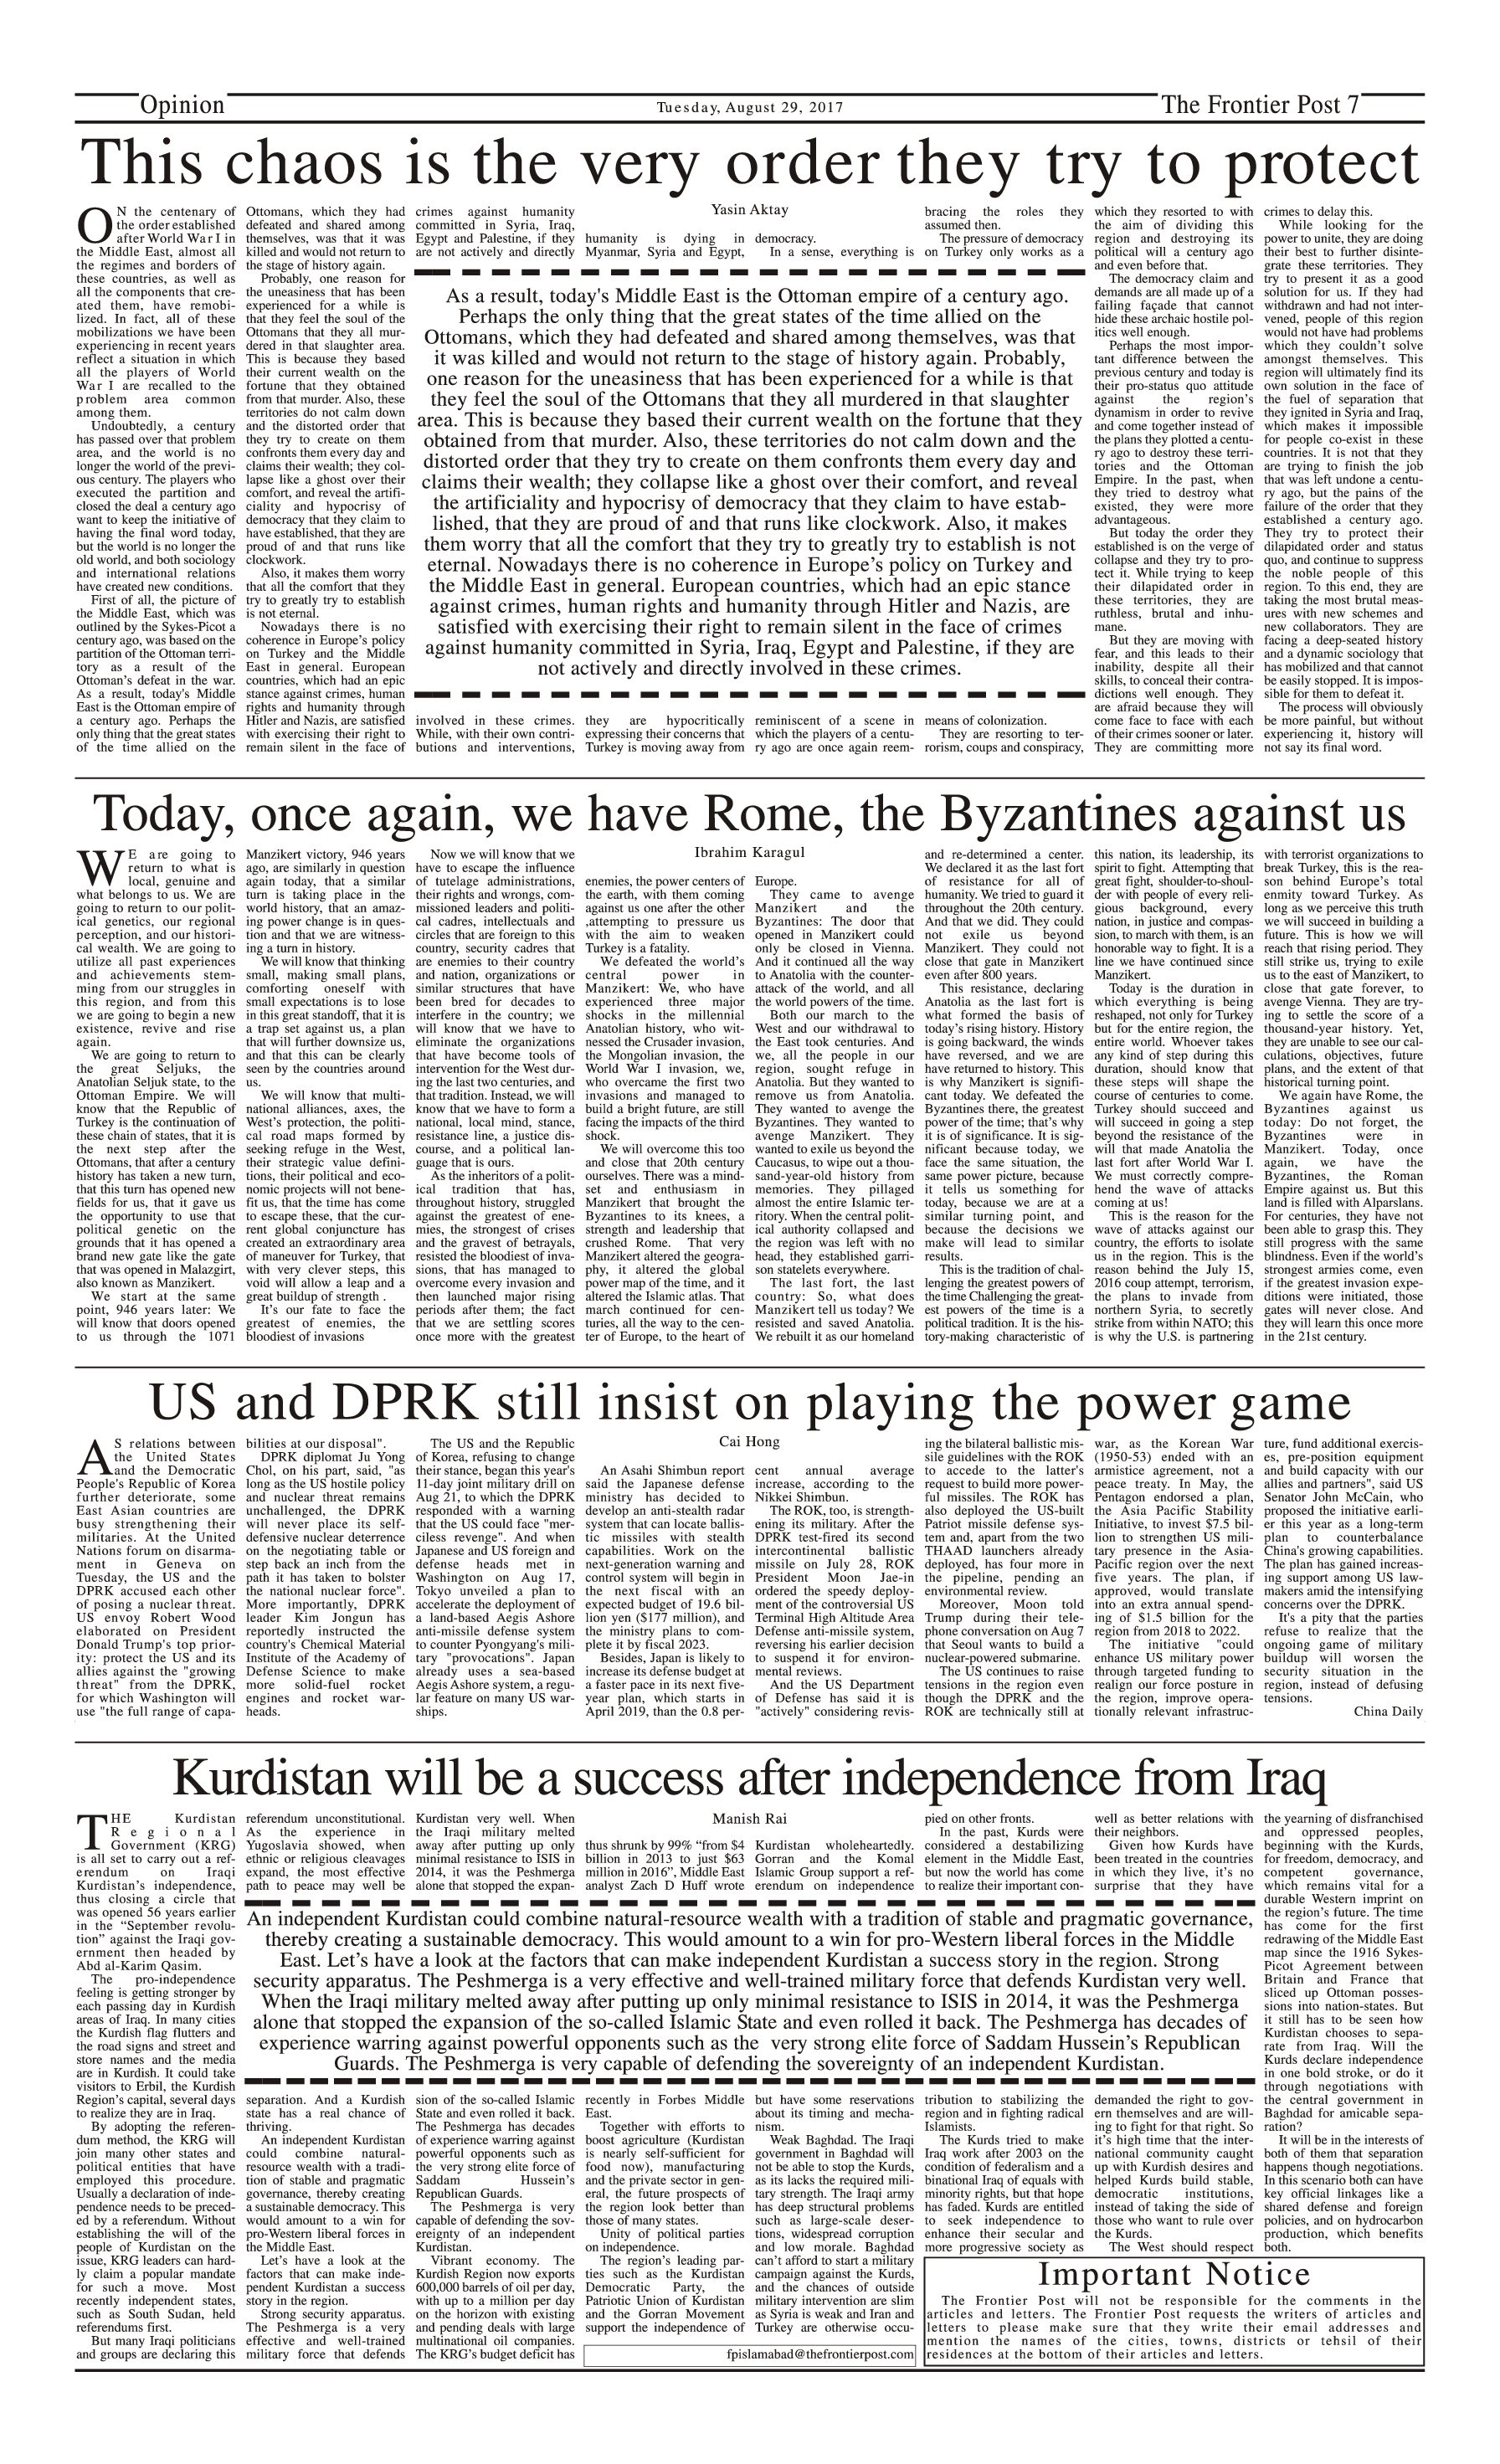 Opinion Page 29